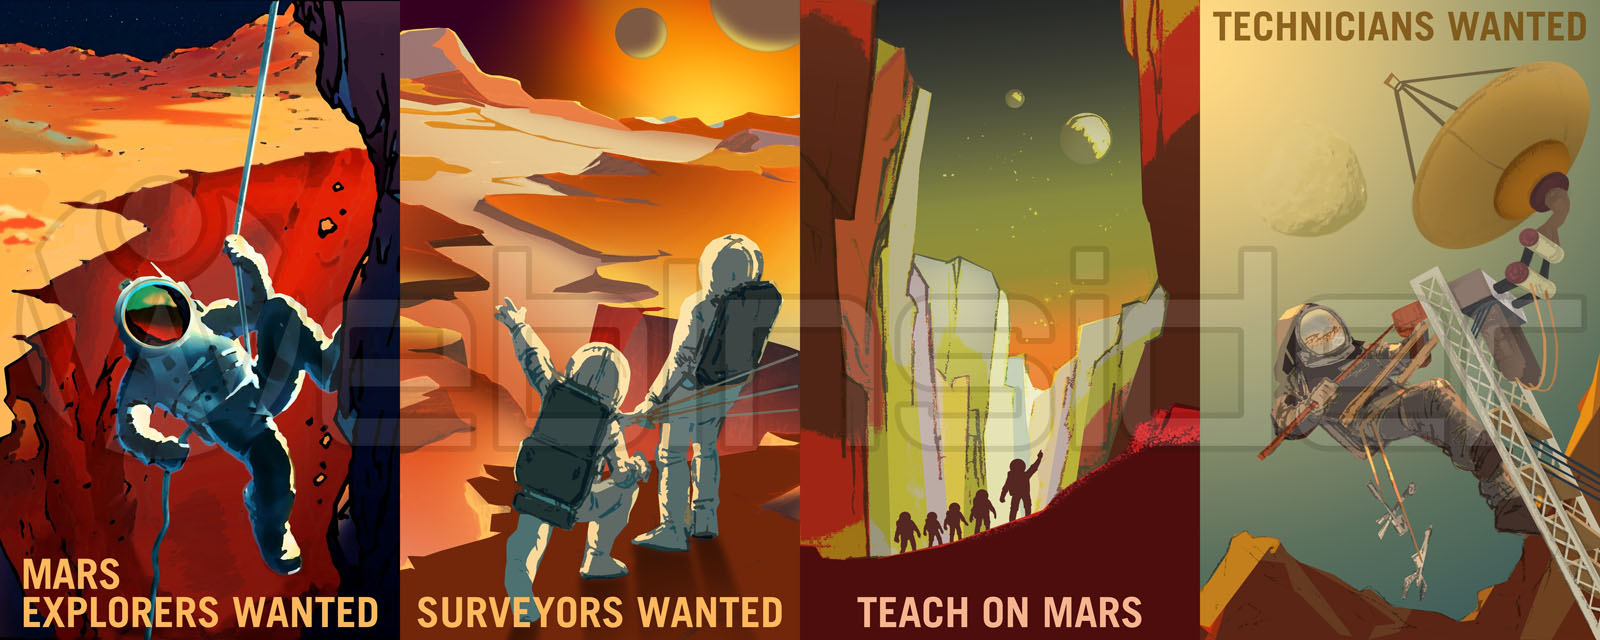 nasa_mars-explorers-wanted_ posters_1x4_02